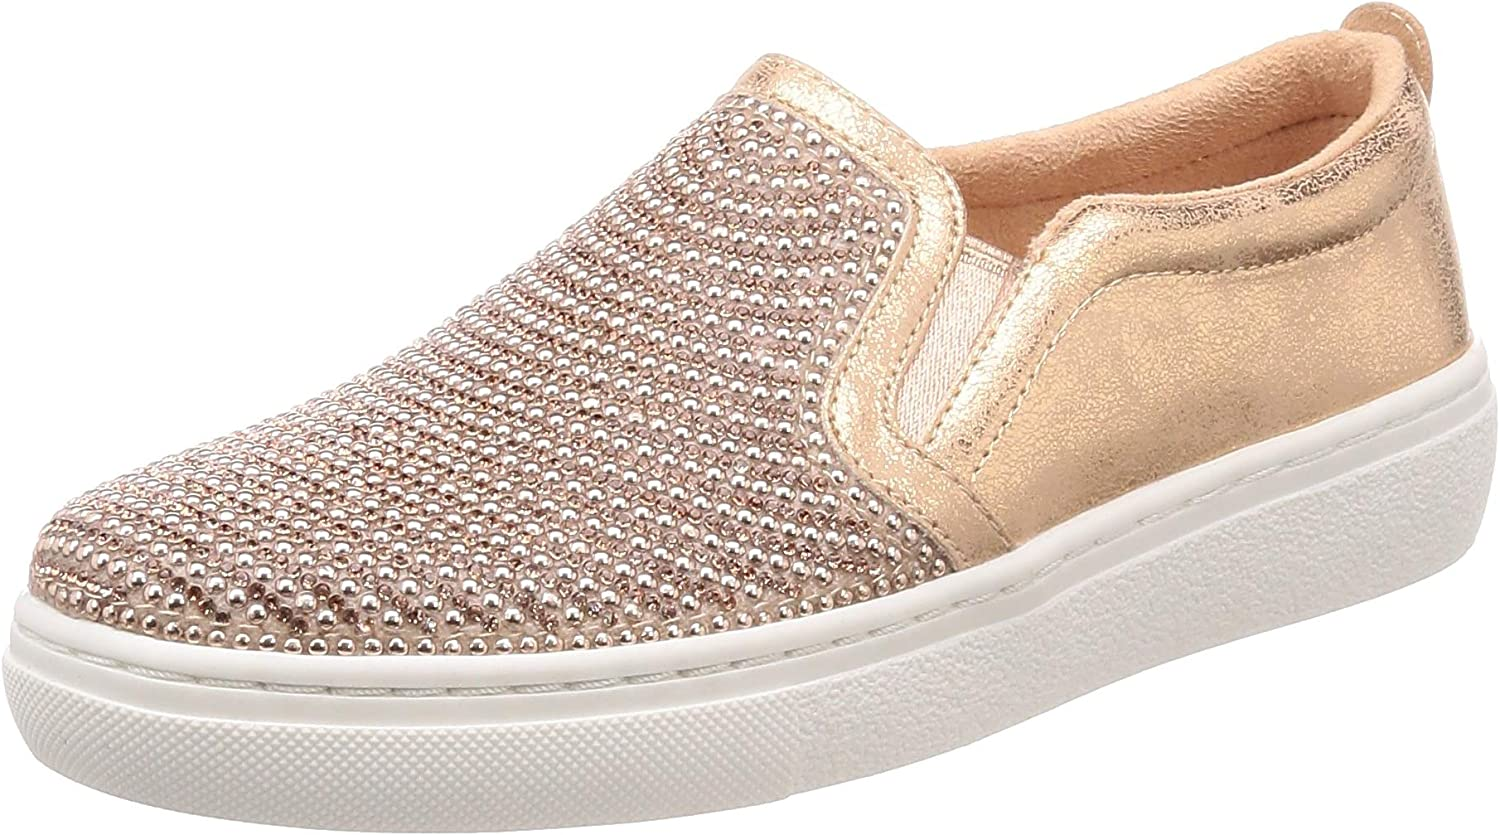 Skechers Street goldie Shiny Shaker Womens Slip On Sneakers